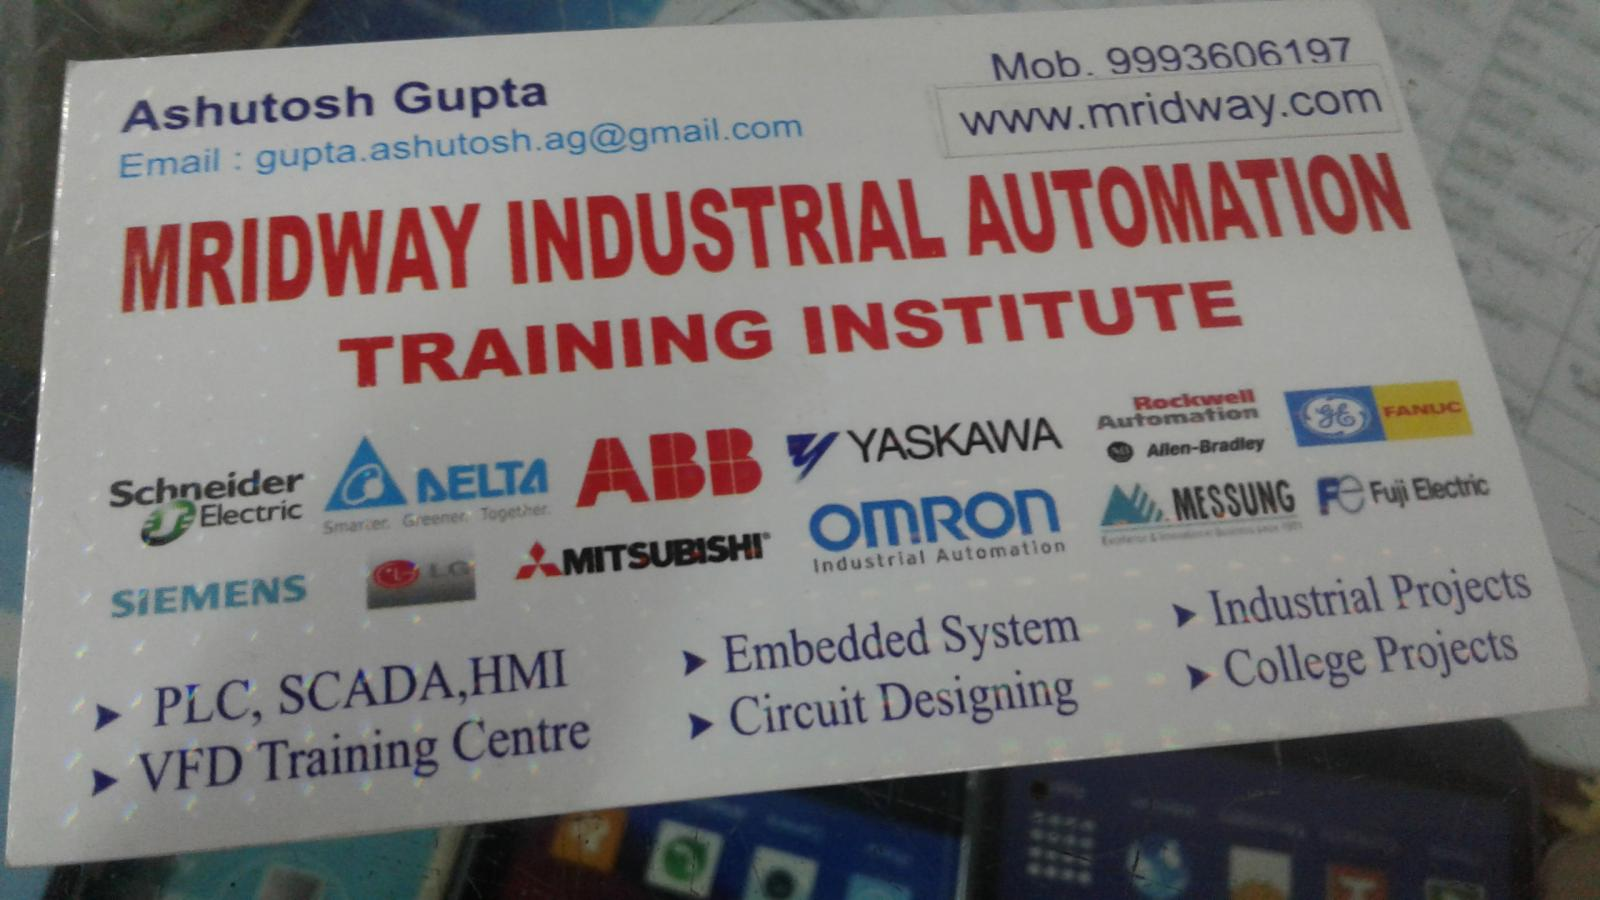 Midway Industrial Automation